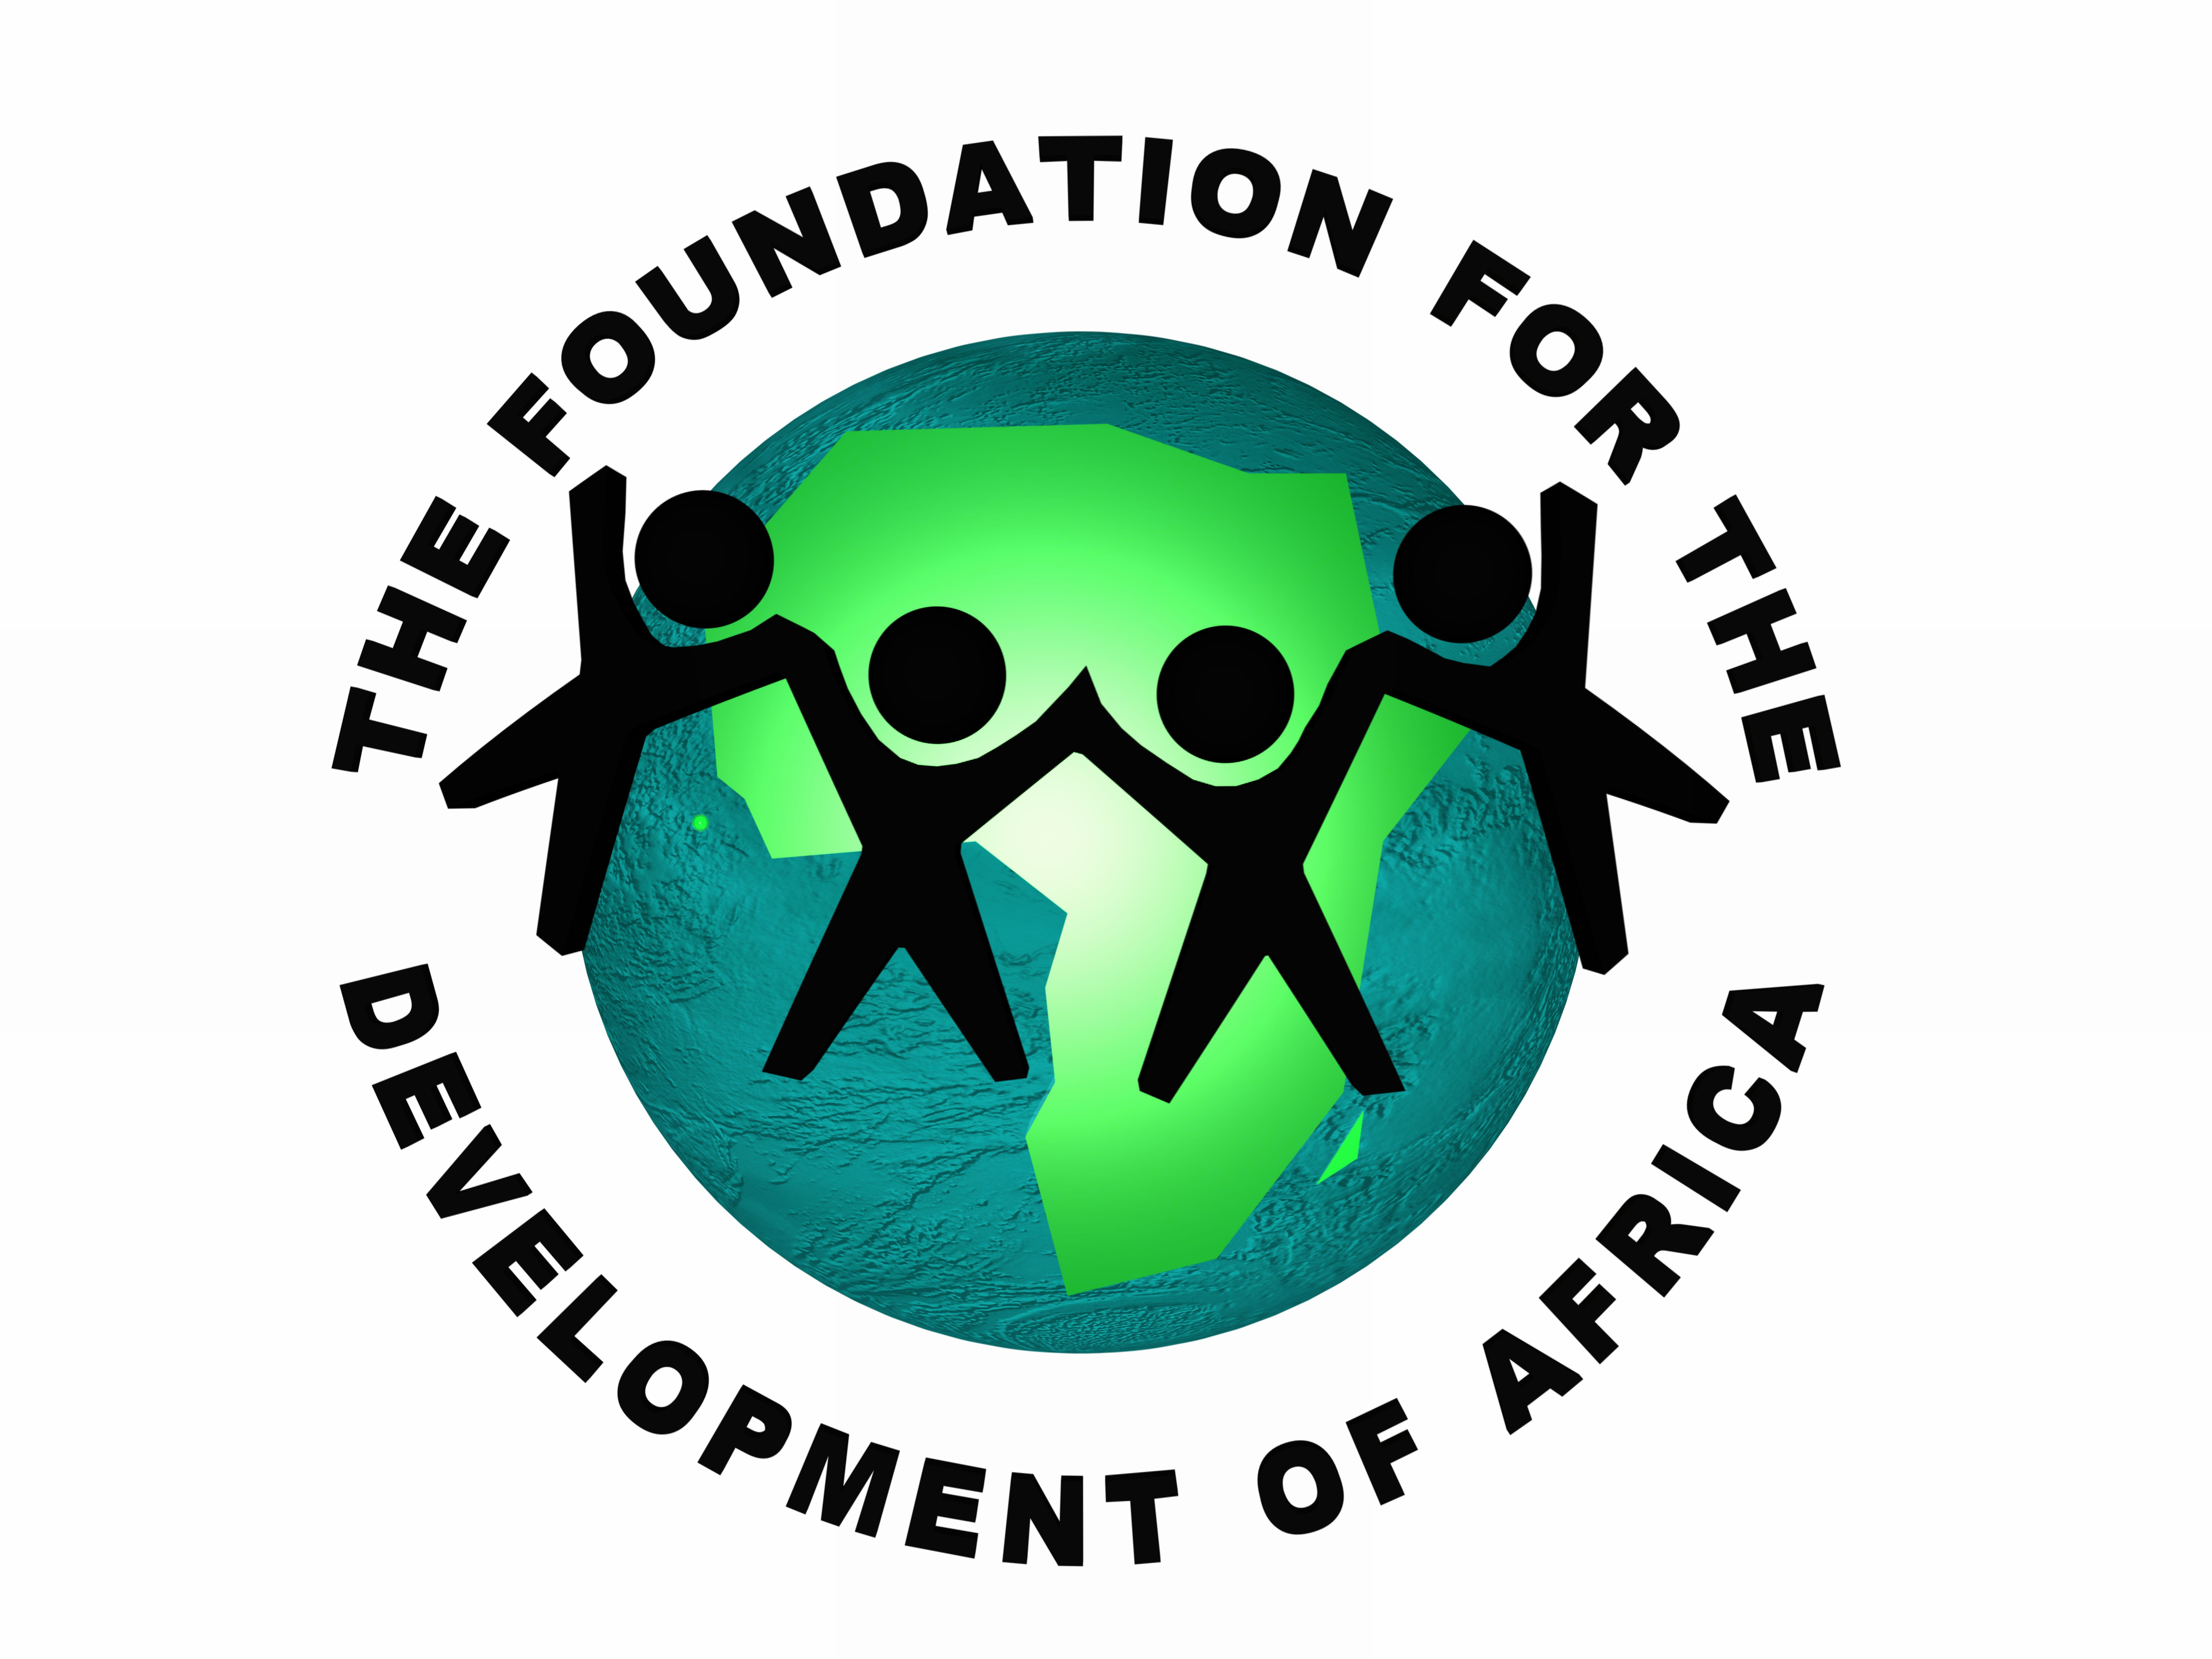 The Foundation For The Development of Africa Photo